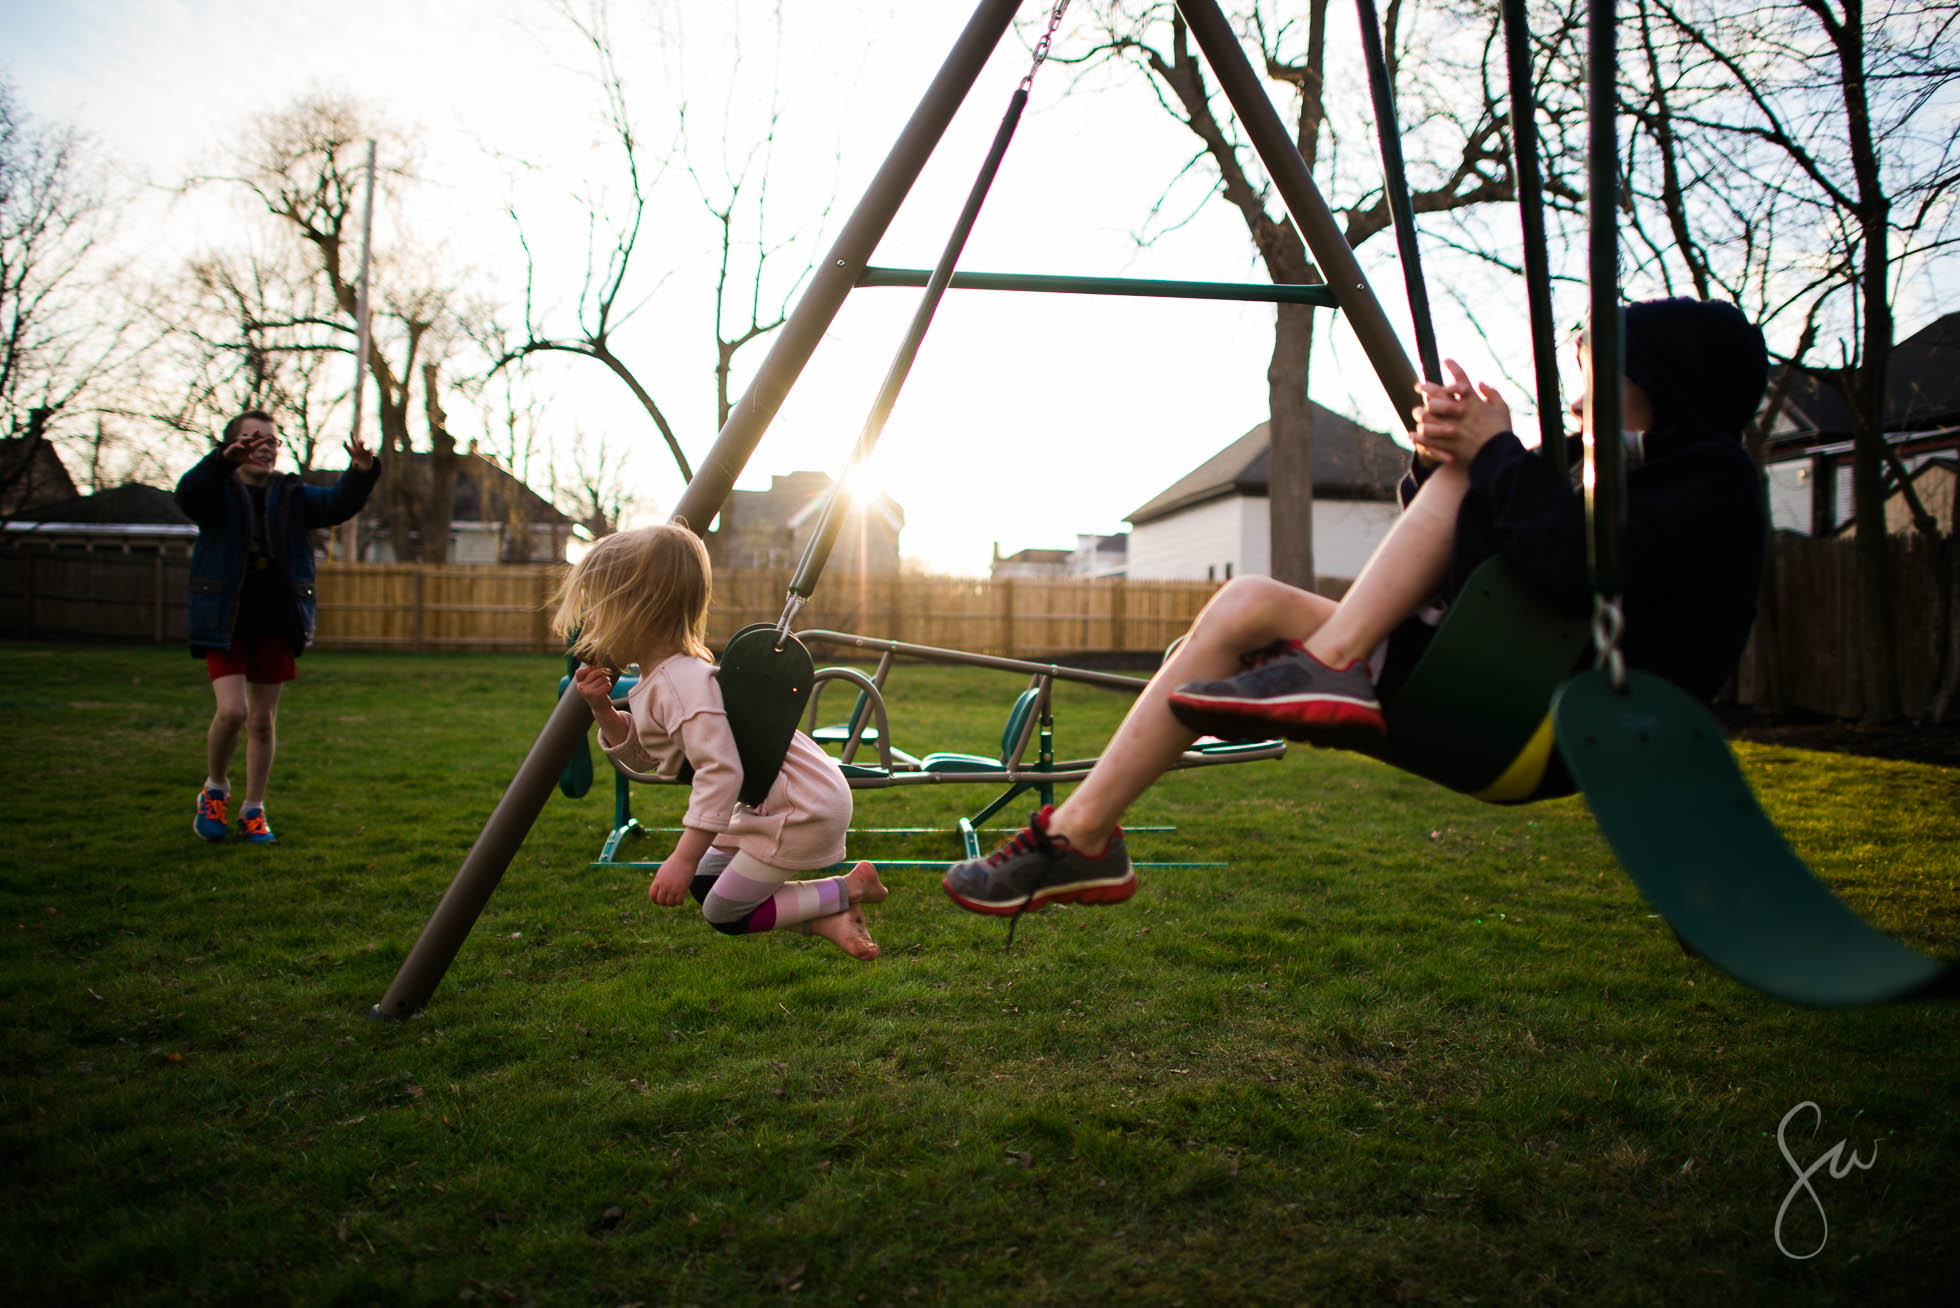 Children-Playing-on-Swingset-on-a-Cool-Spring-Evening-at-the-end-of-Golden-Hour-4781